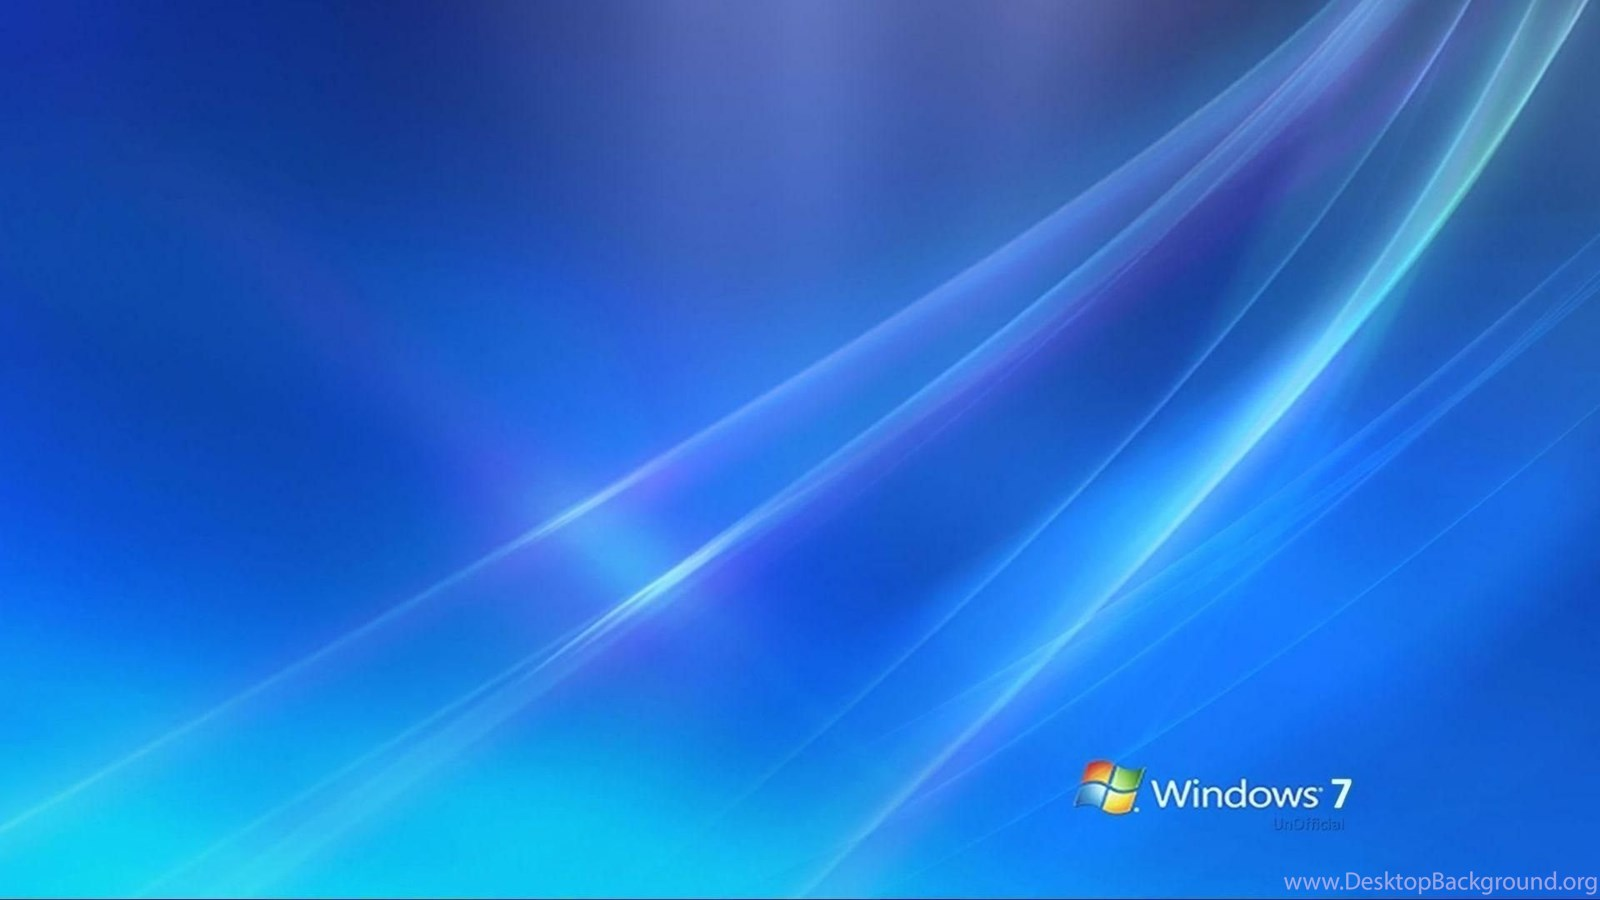 Windows 7 Ultimate Collection Of HD Wallpapers 633